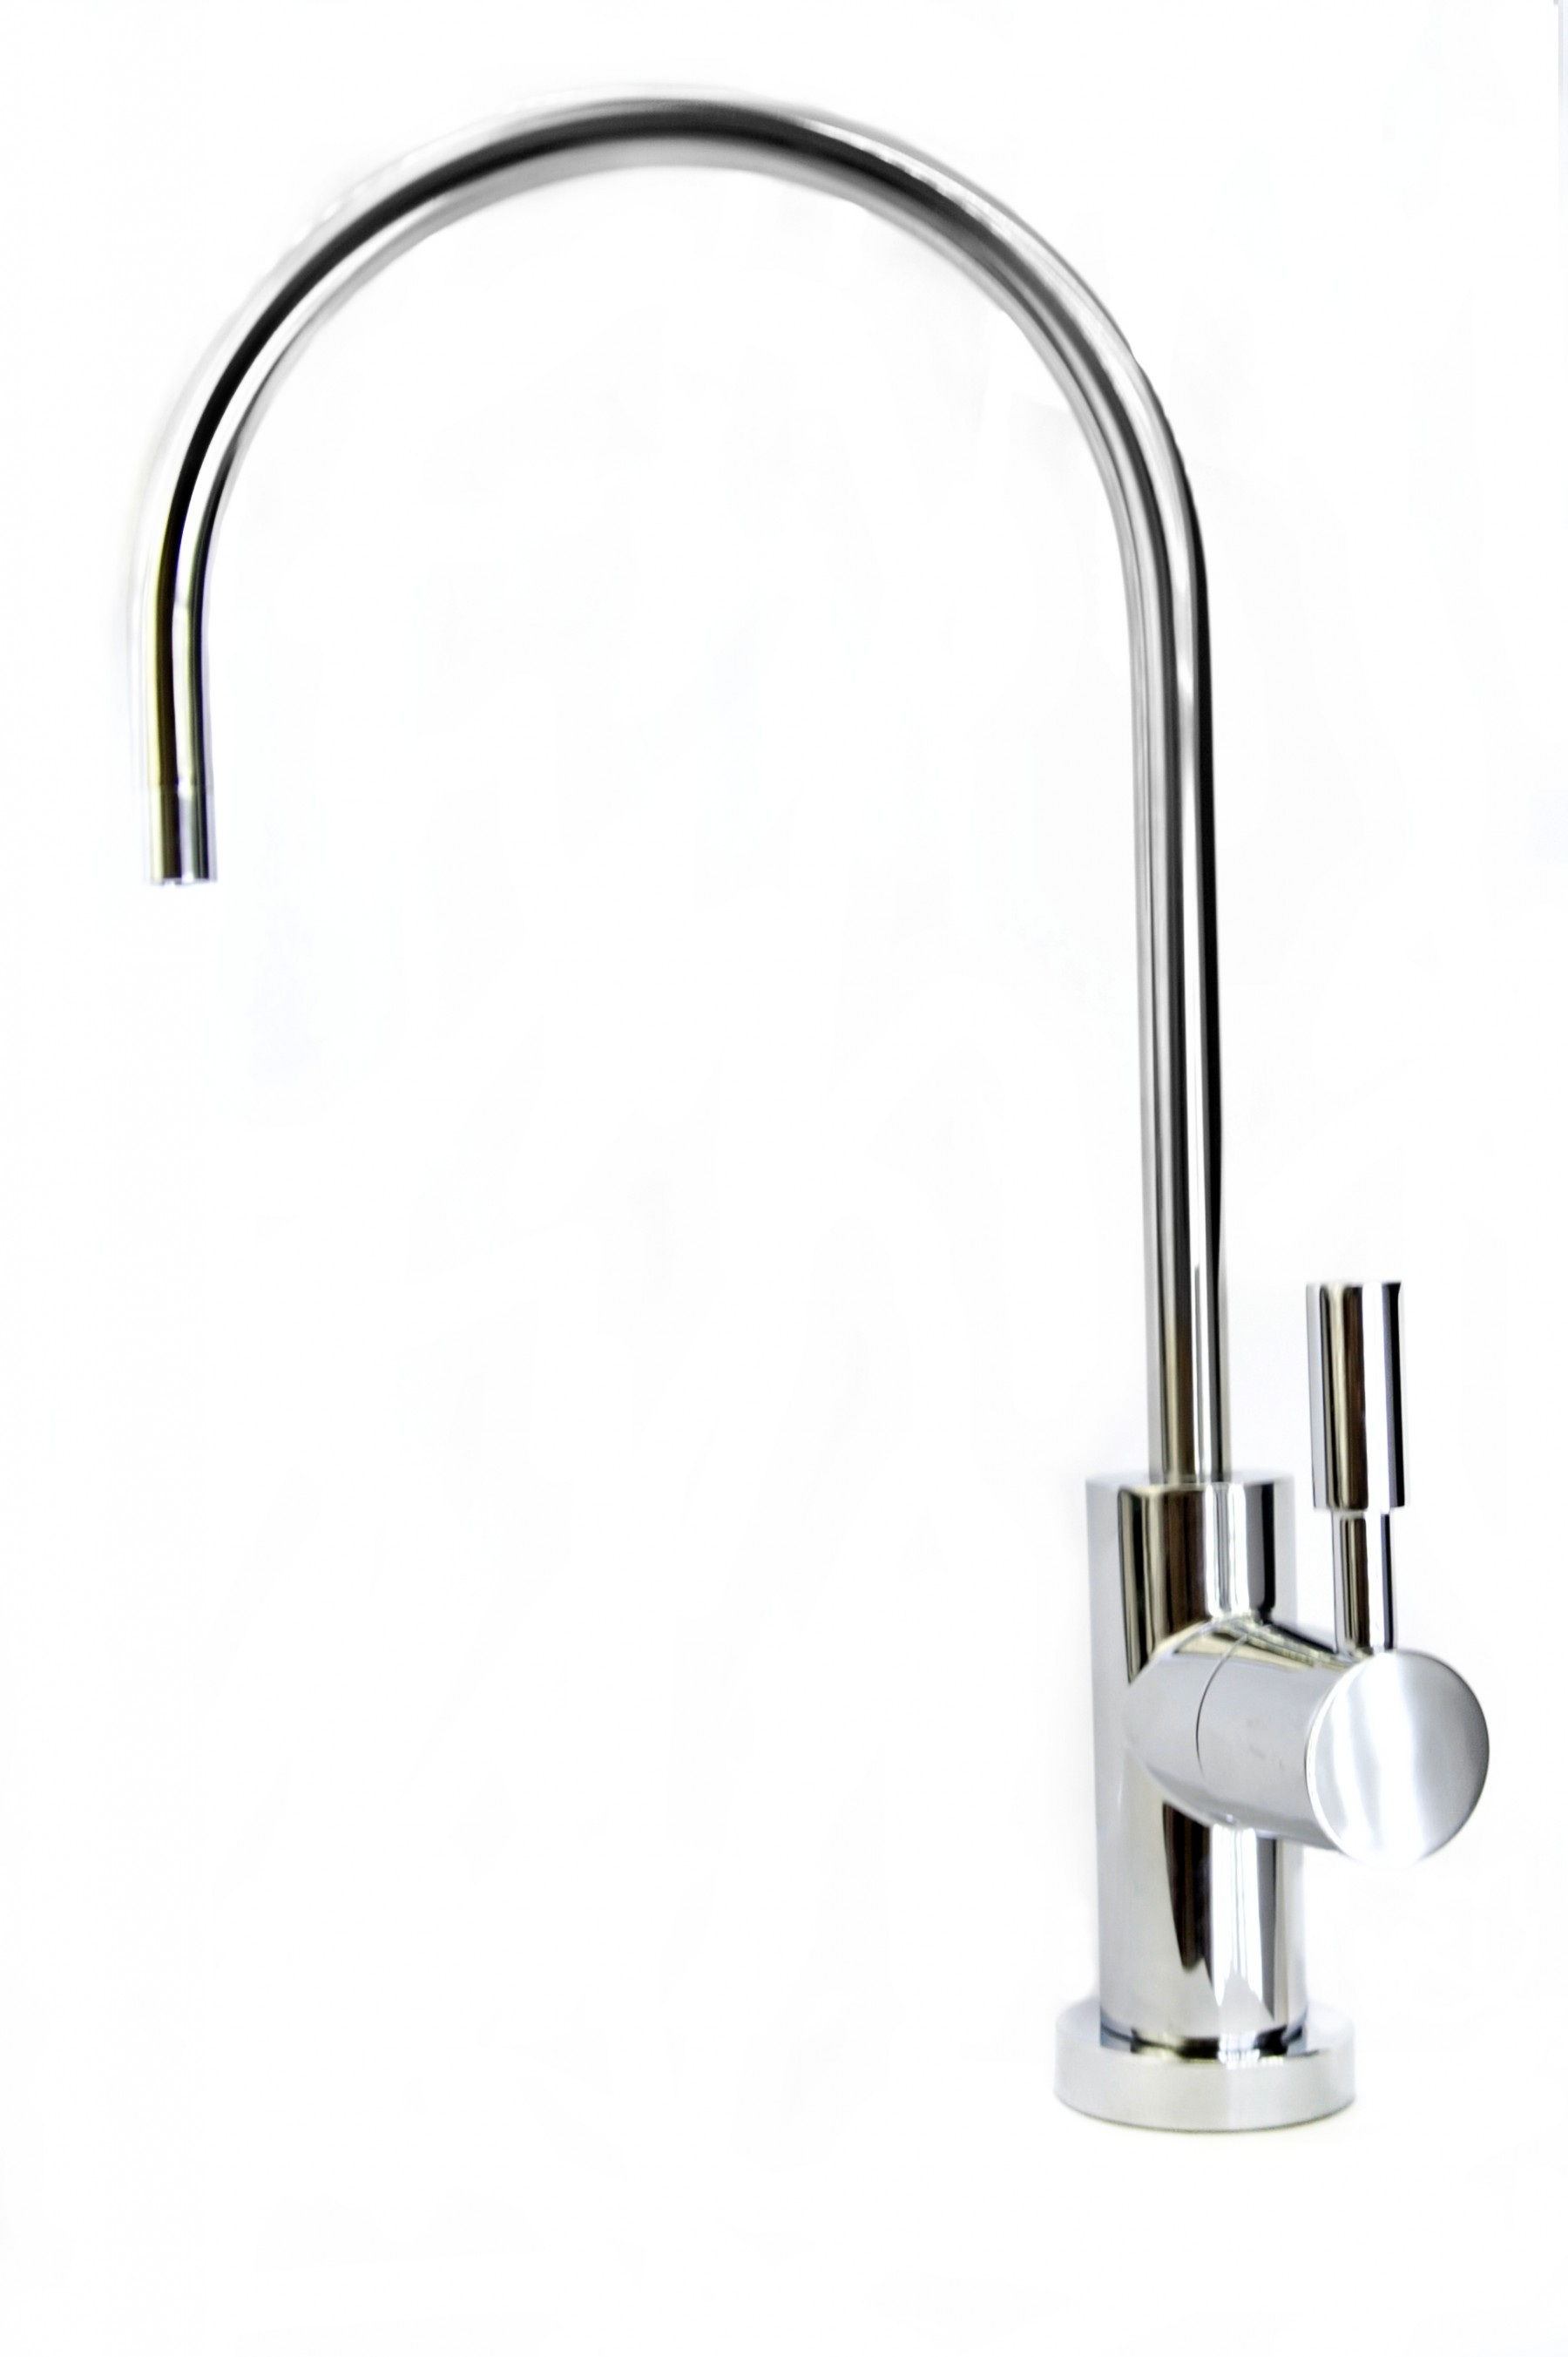 Swan Neck Chrome Ro Amp Water Filter Tap By Finerfilters